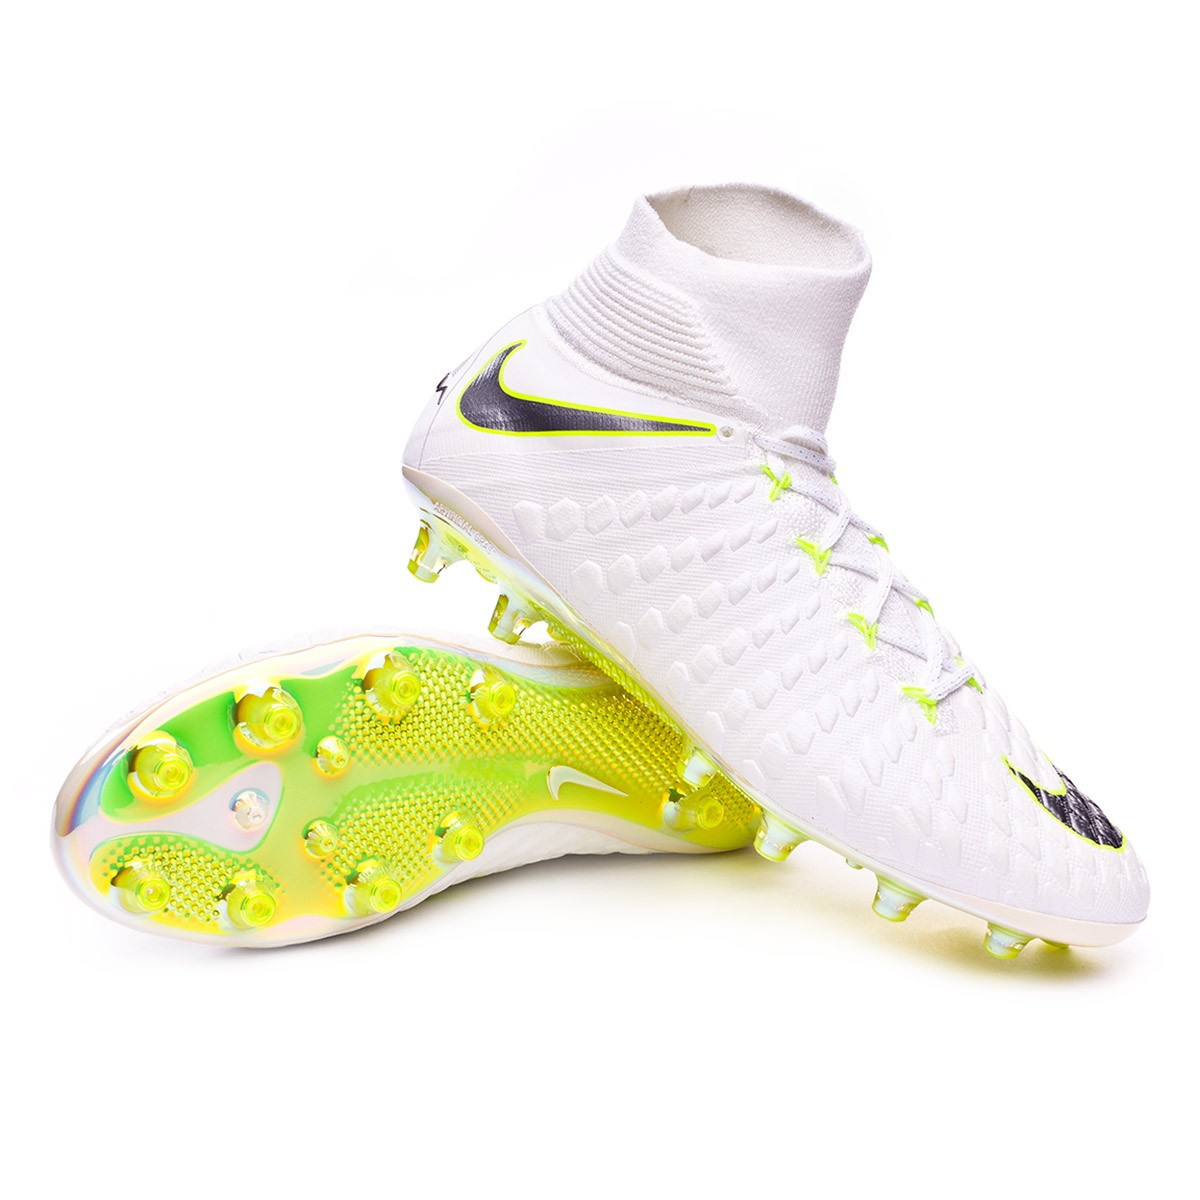 brand new 6678d ae71f Zapatos de fútbol Nike Hypervenom Phantom III Elite DF AG-Pro  White-Metallic cool grey-Volt-Metallic cool g - Tienda de fútbol Fútbol  Emotion